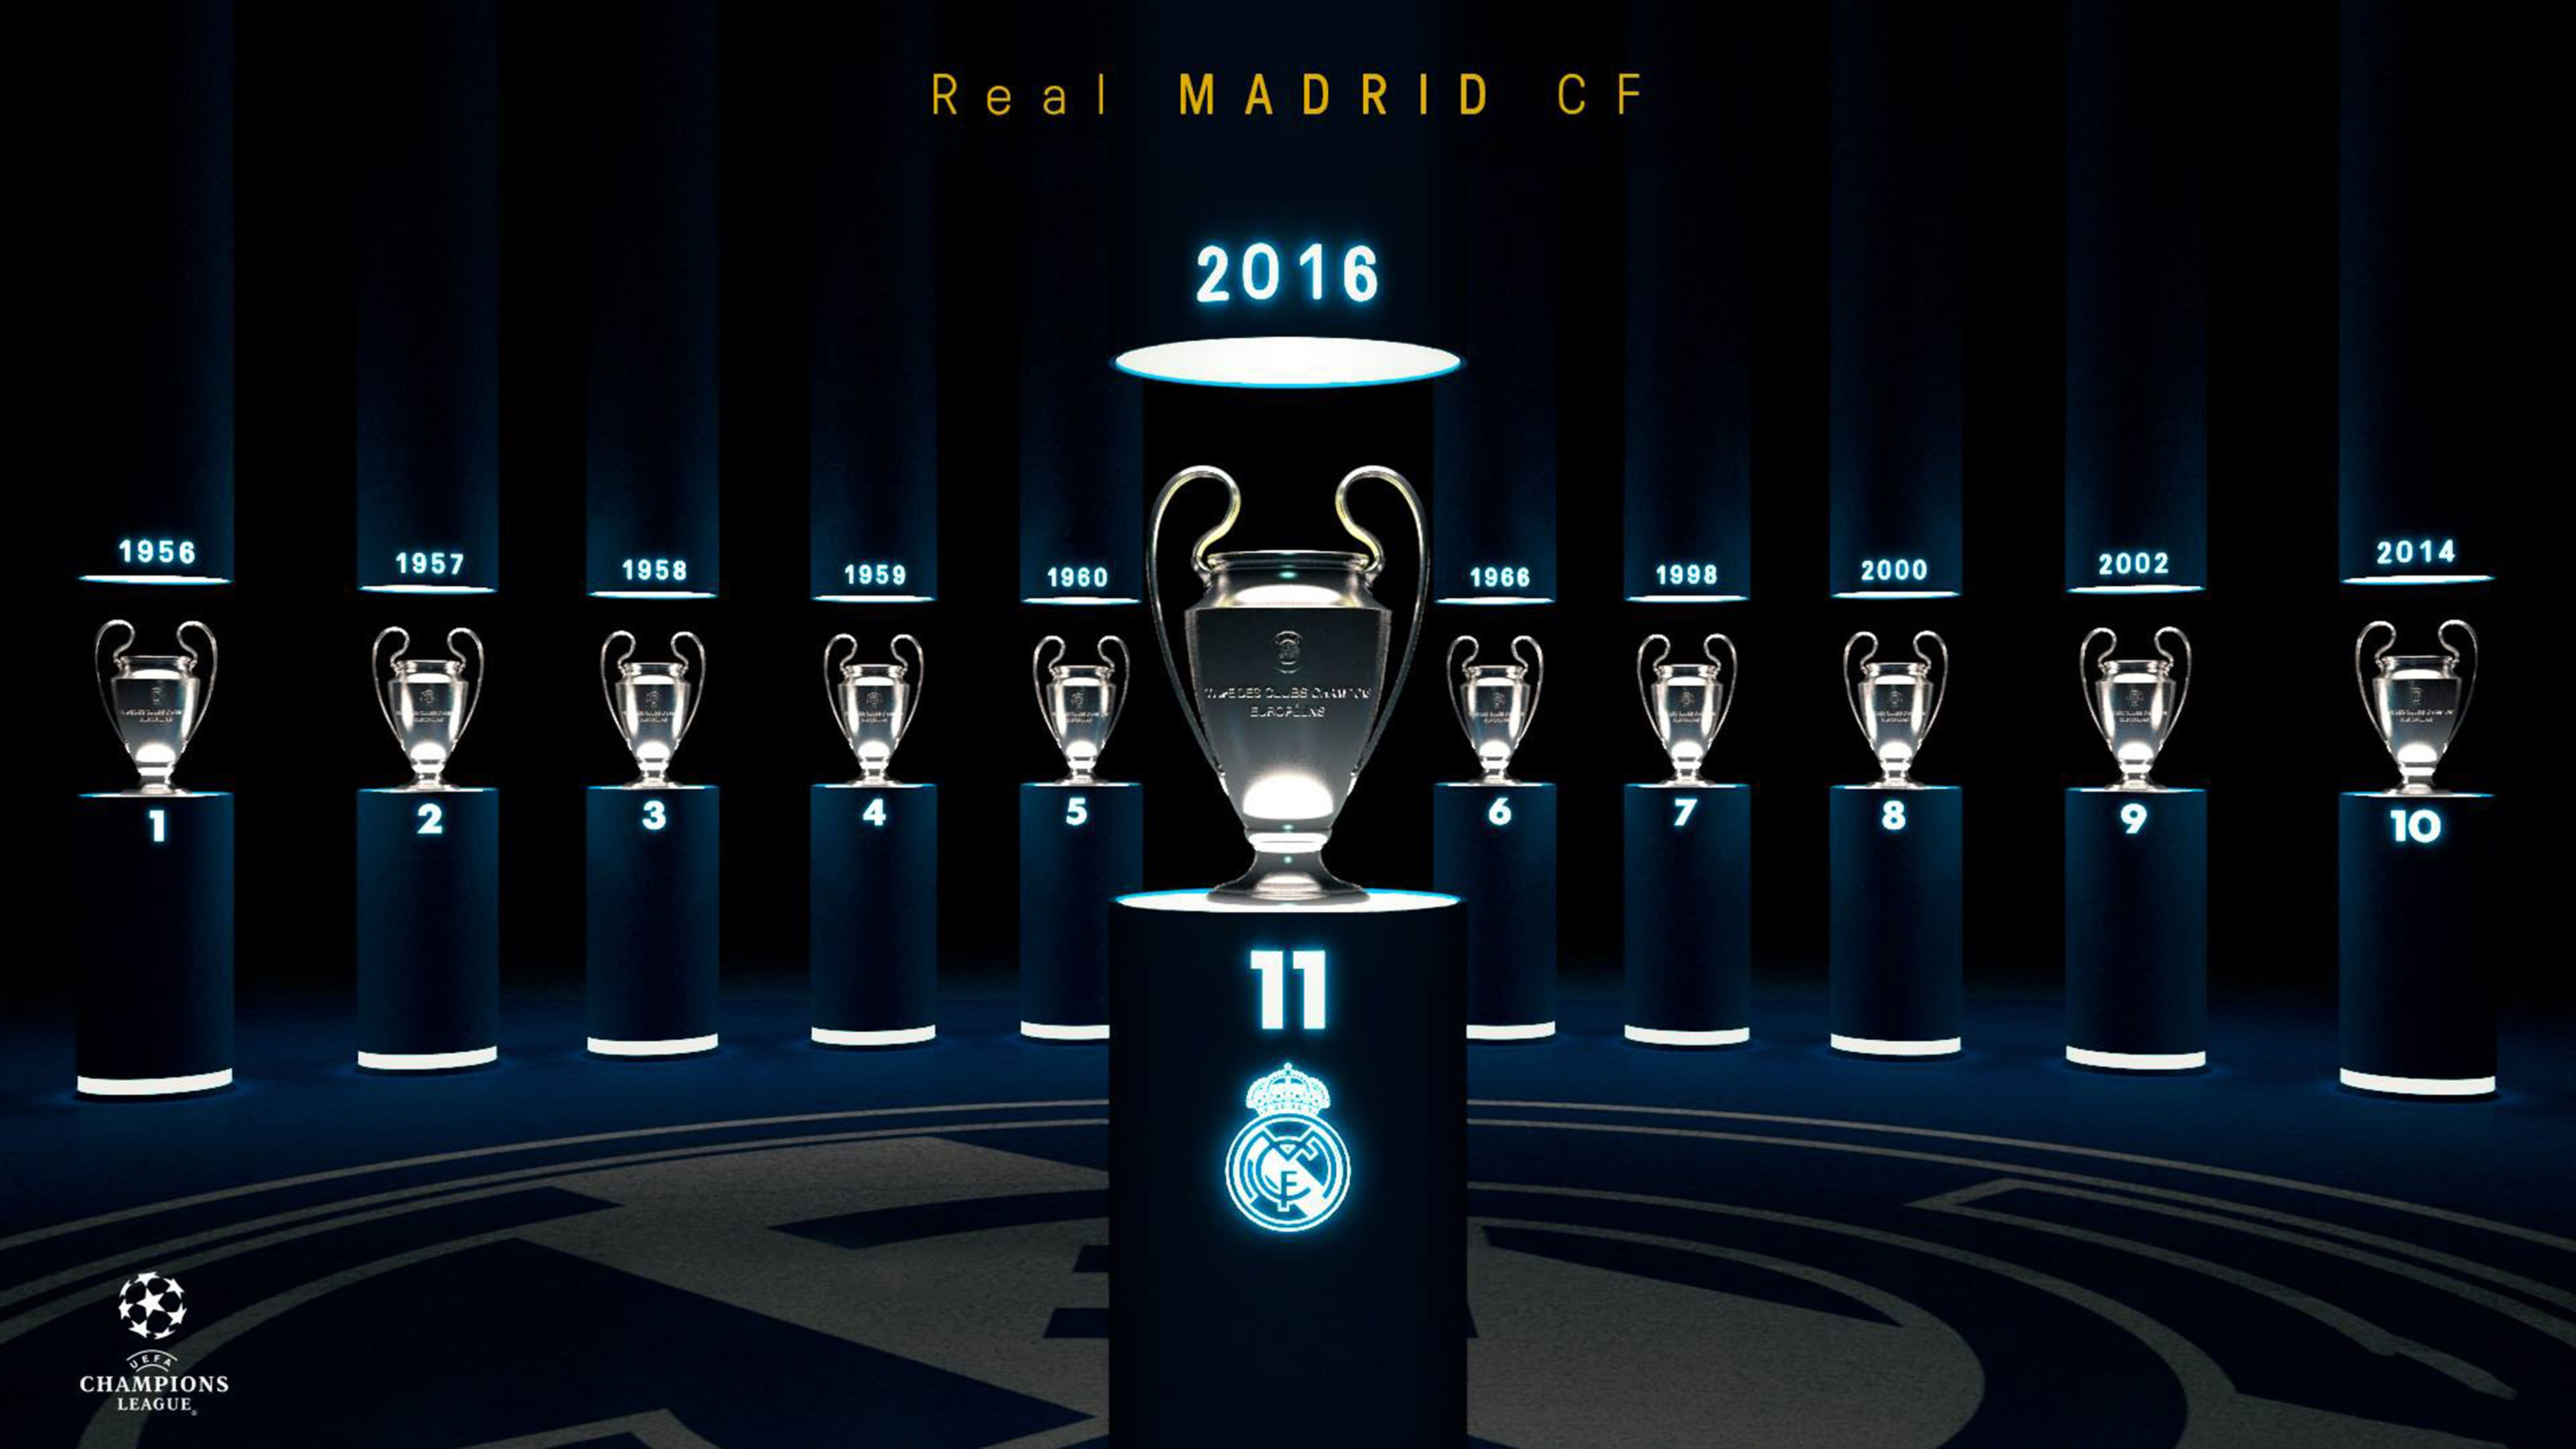 Real Madrid Trophies Pemain sepak bola, Sepak bola